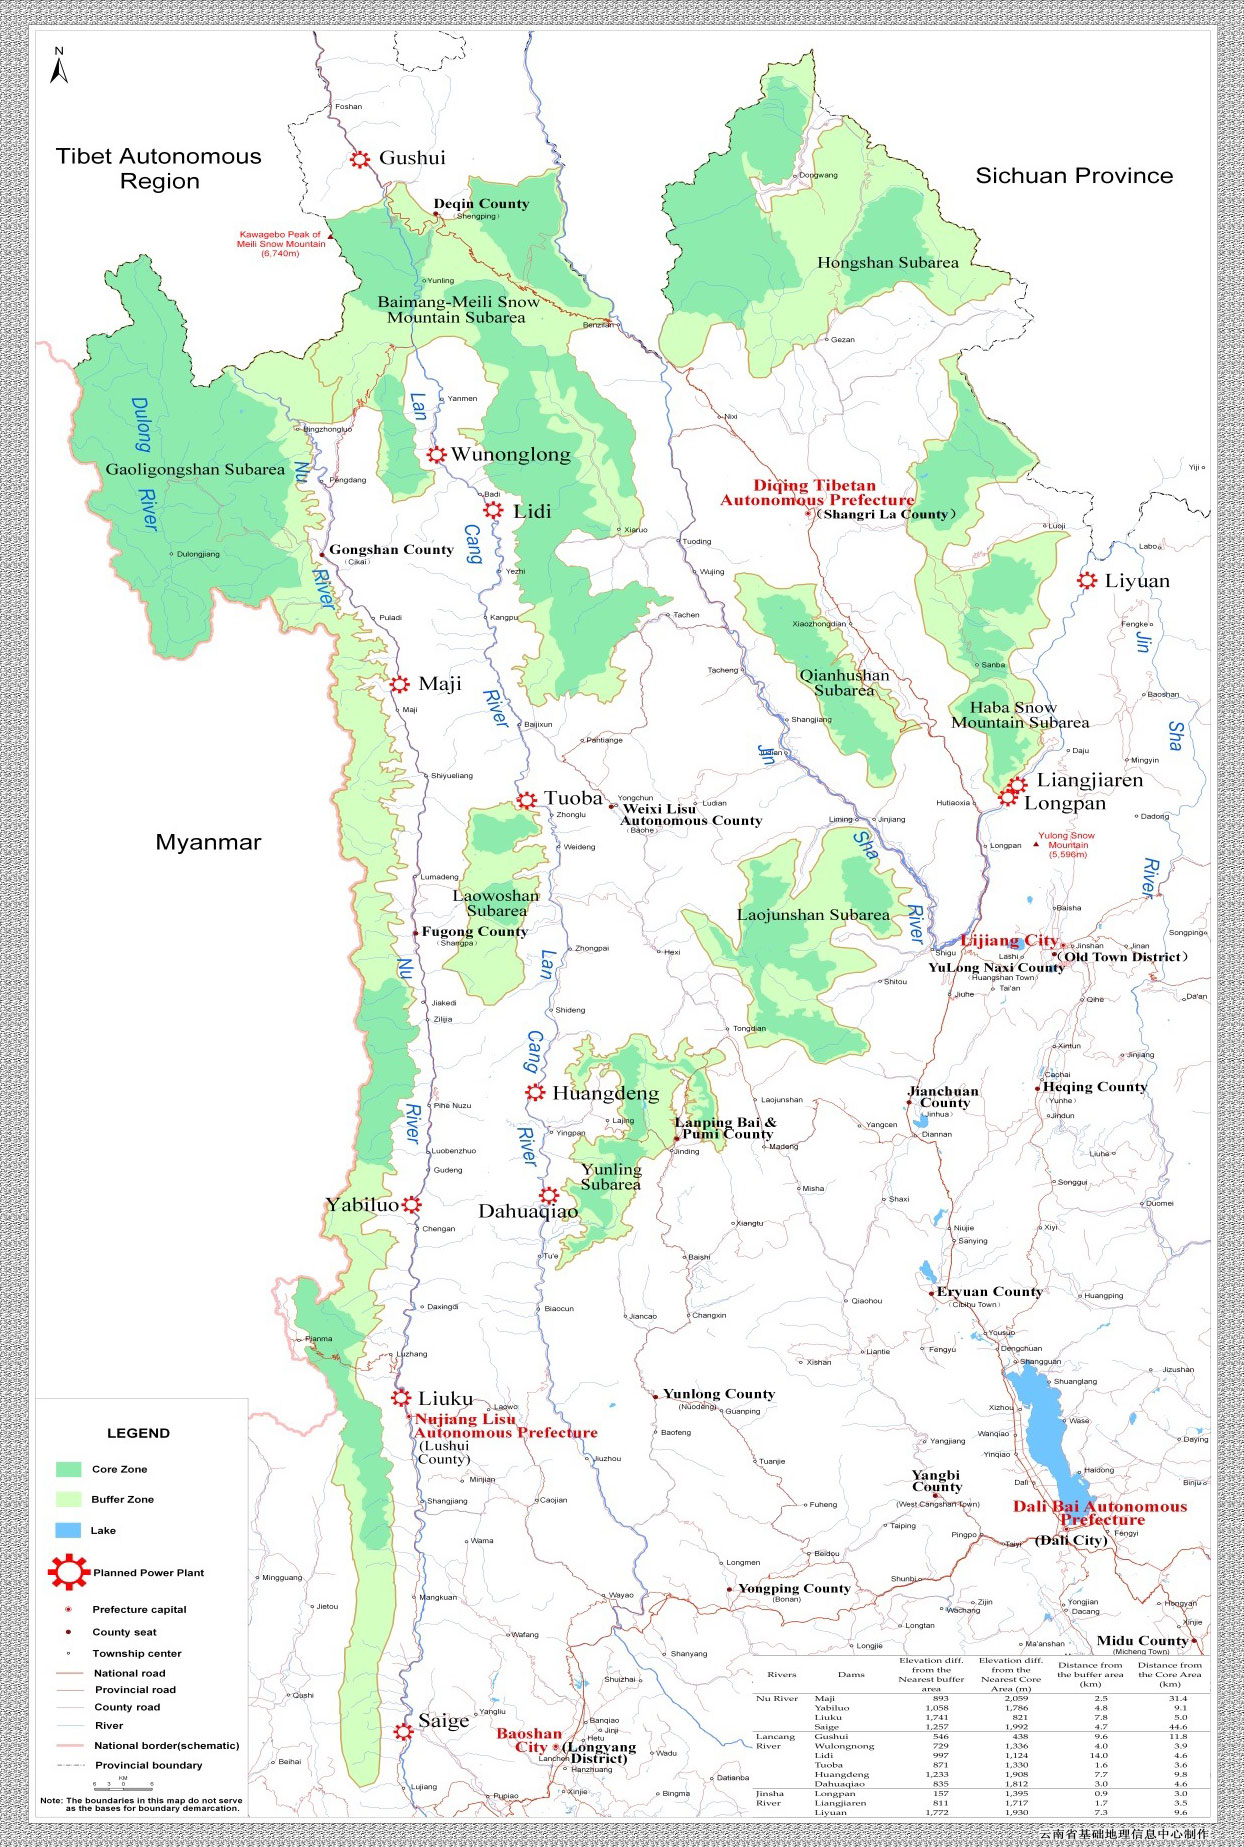 Hydropower dams proposed